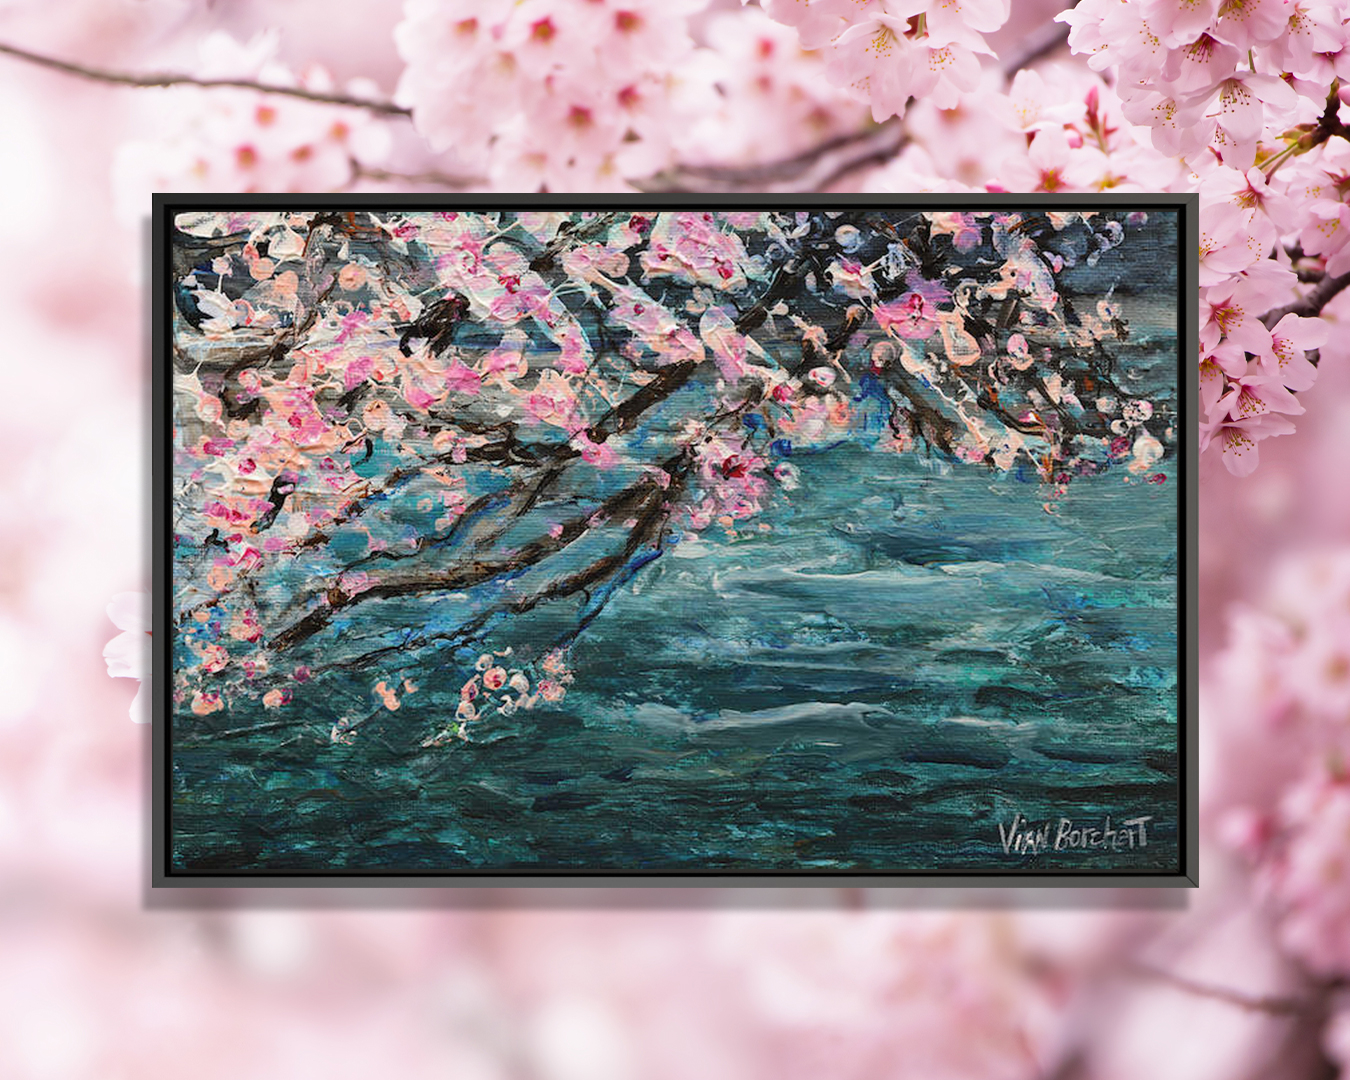 """""""Cherry Blossom Over Water"""" by Vian Borchert shows pink cherry blossom trees over a blue sea."""